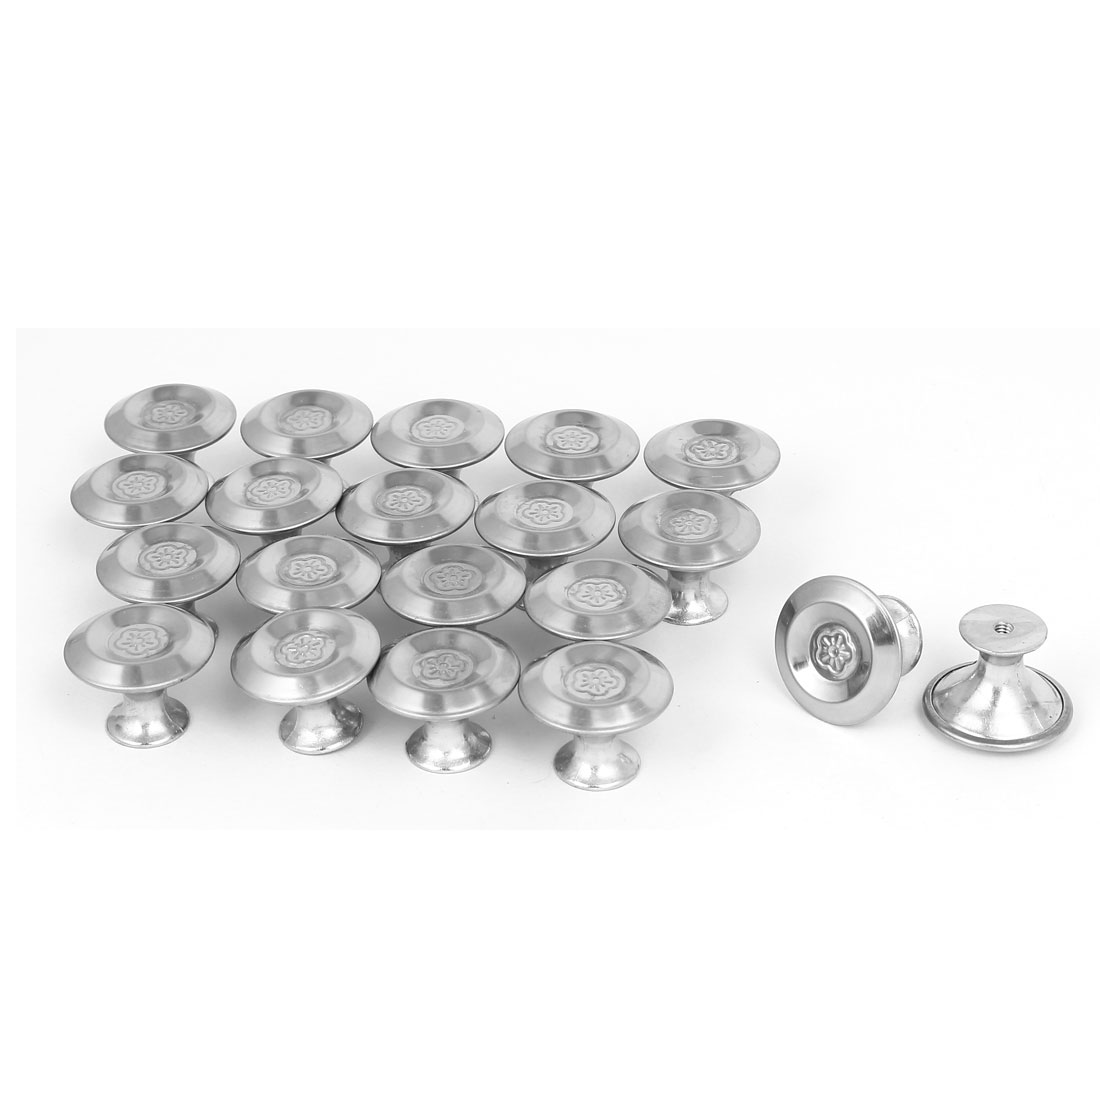 Cabinet Drawer Metal Single Hole Flower Pattern Pull Knobs 27.5mmx20mm 20pcs